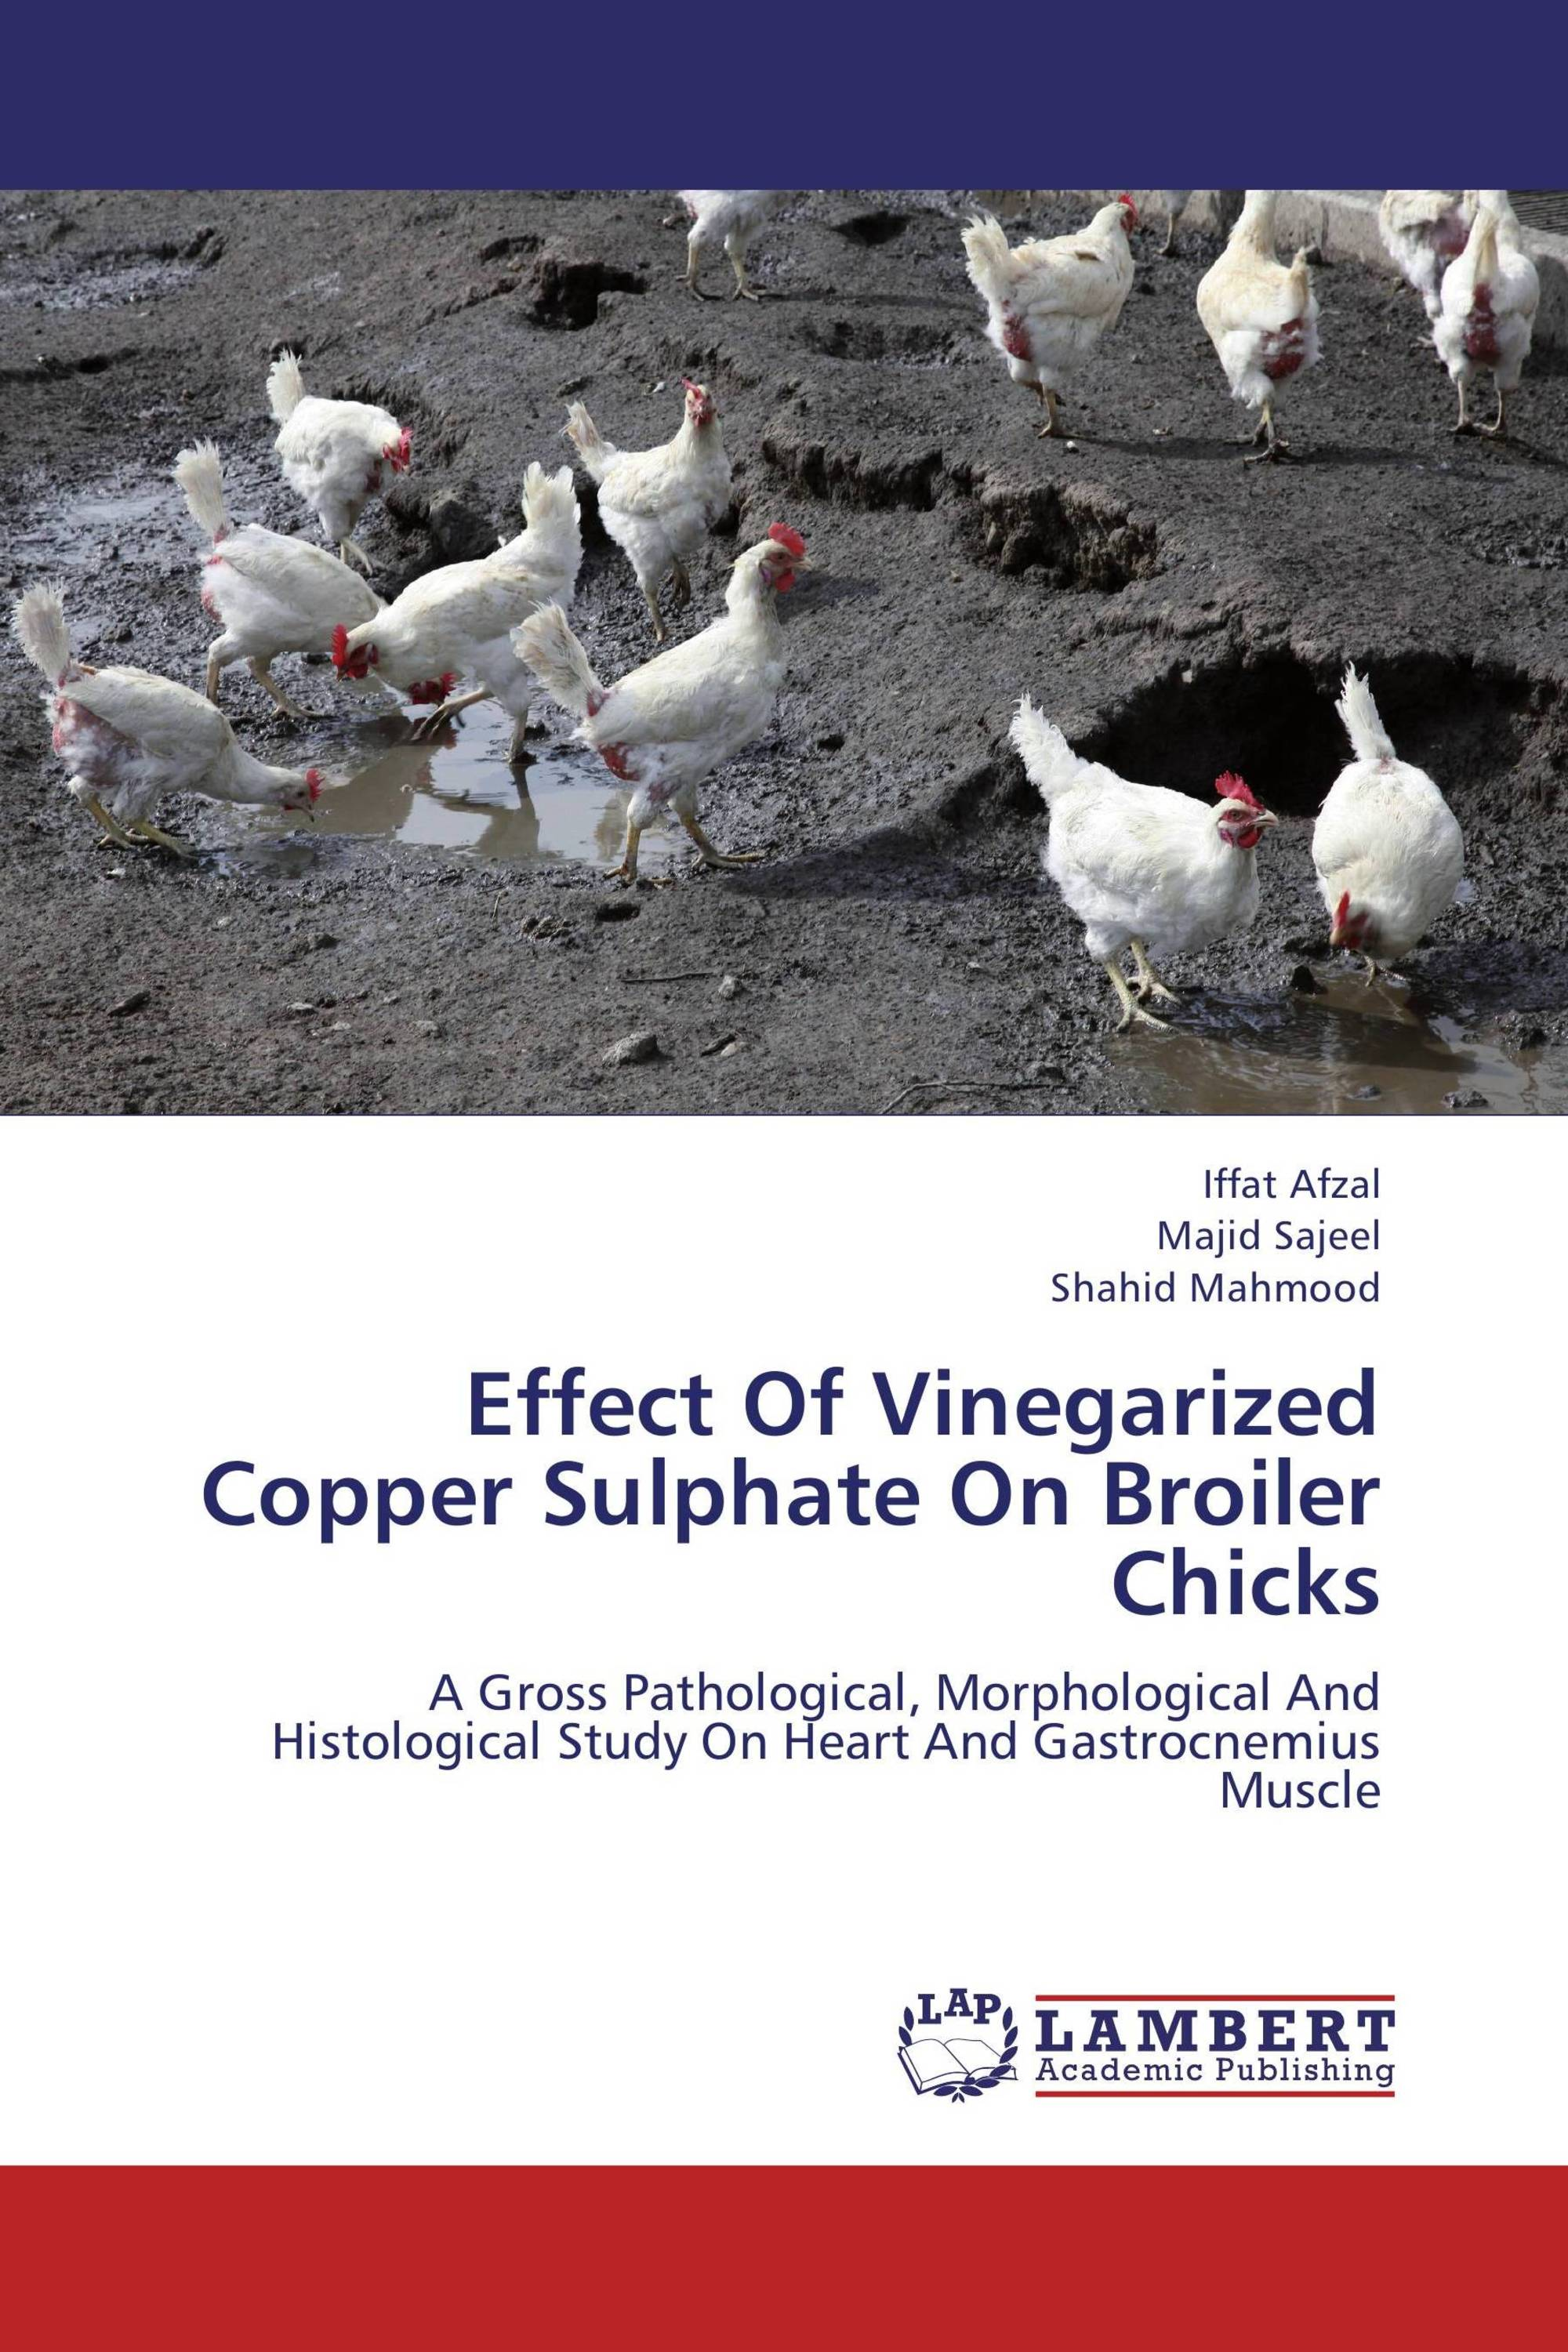 Effect Of Vinegarized Copper Sulphate On Broiler Chicks